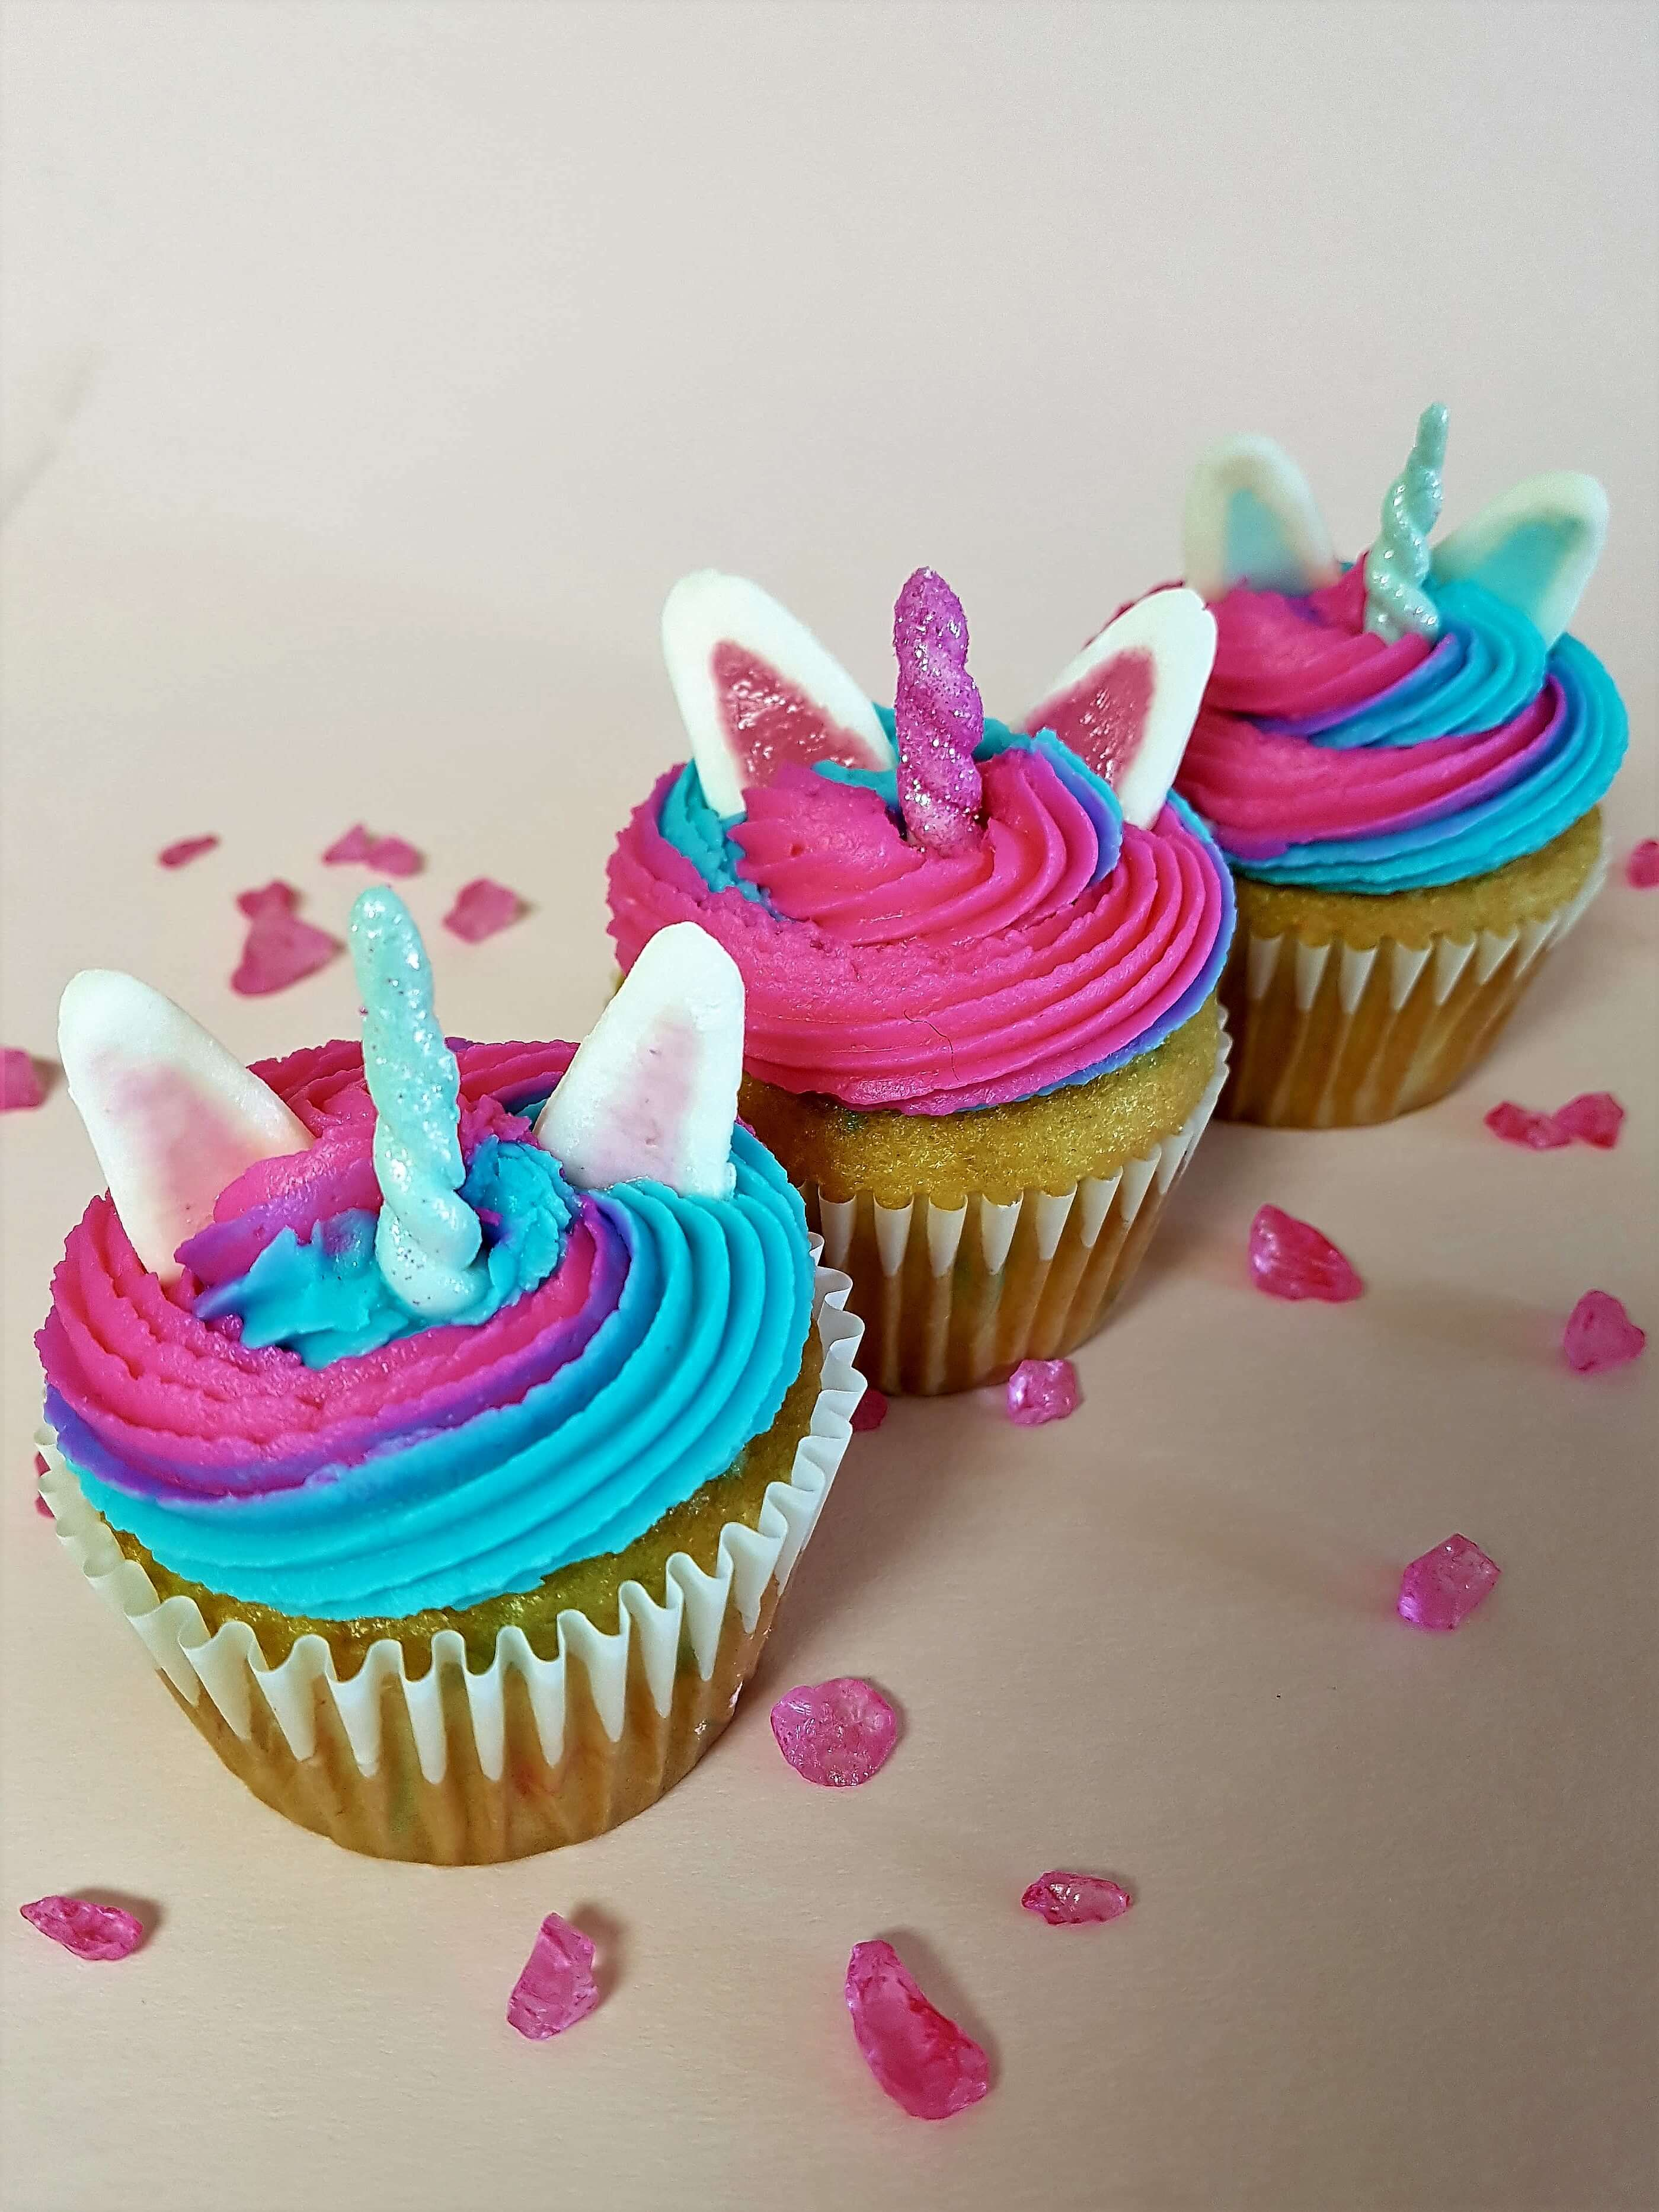 Adorable Unicorn Cupcakes Decorations Tots Family Parenting